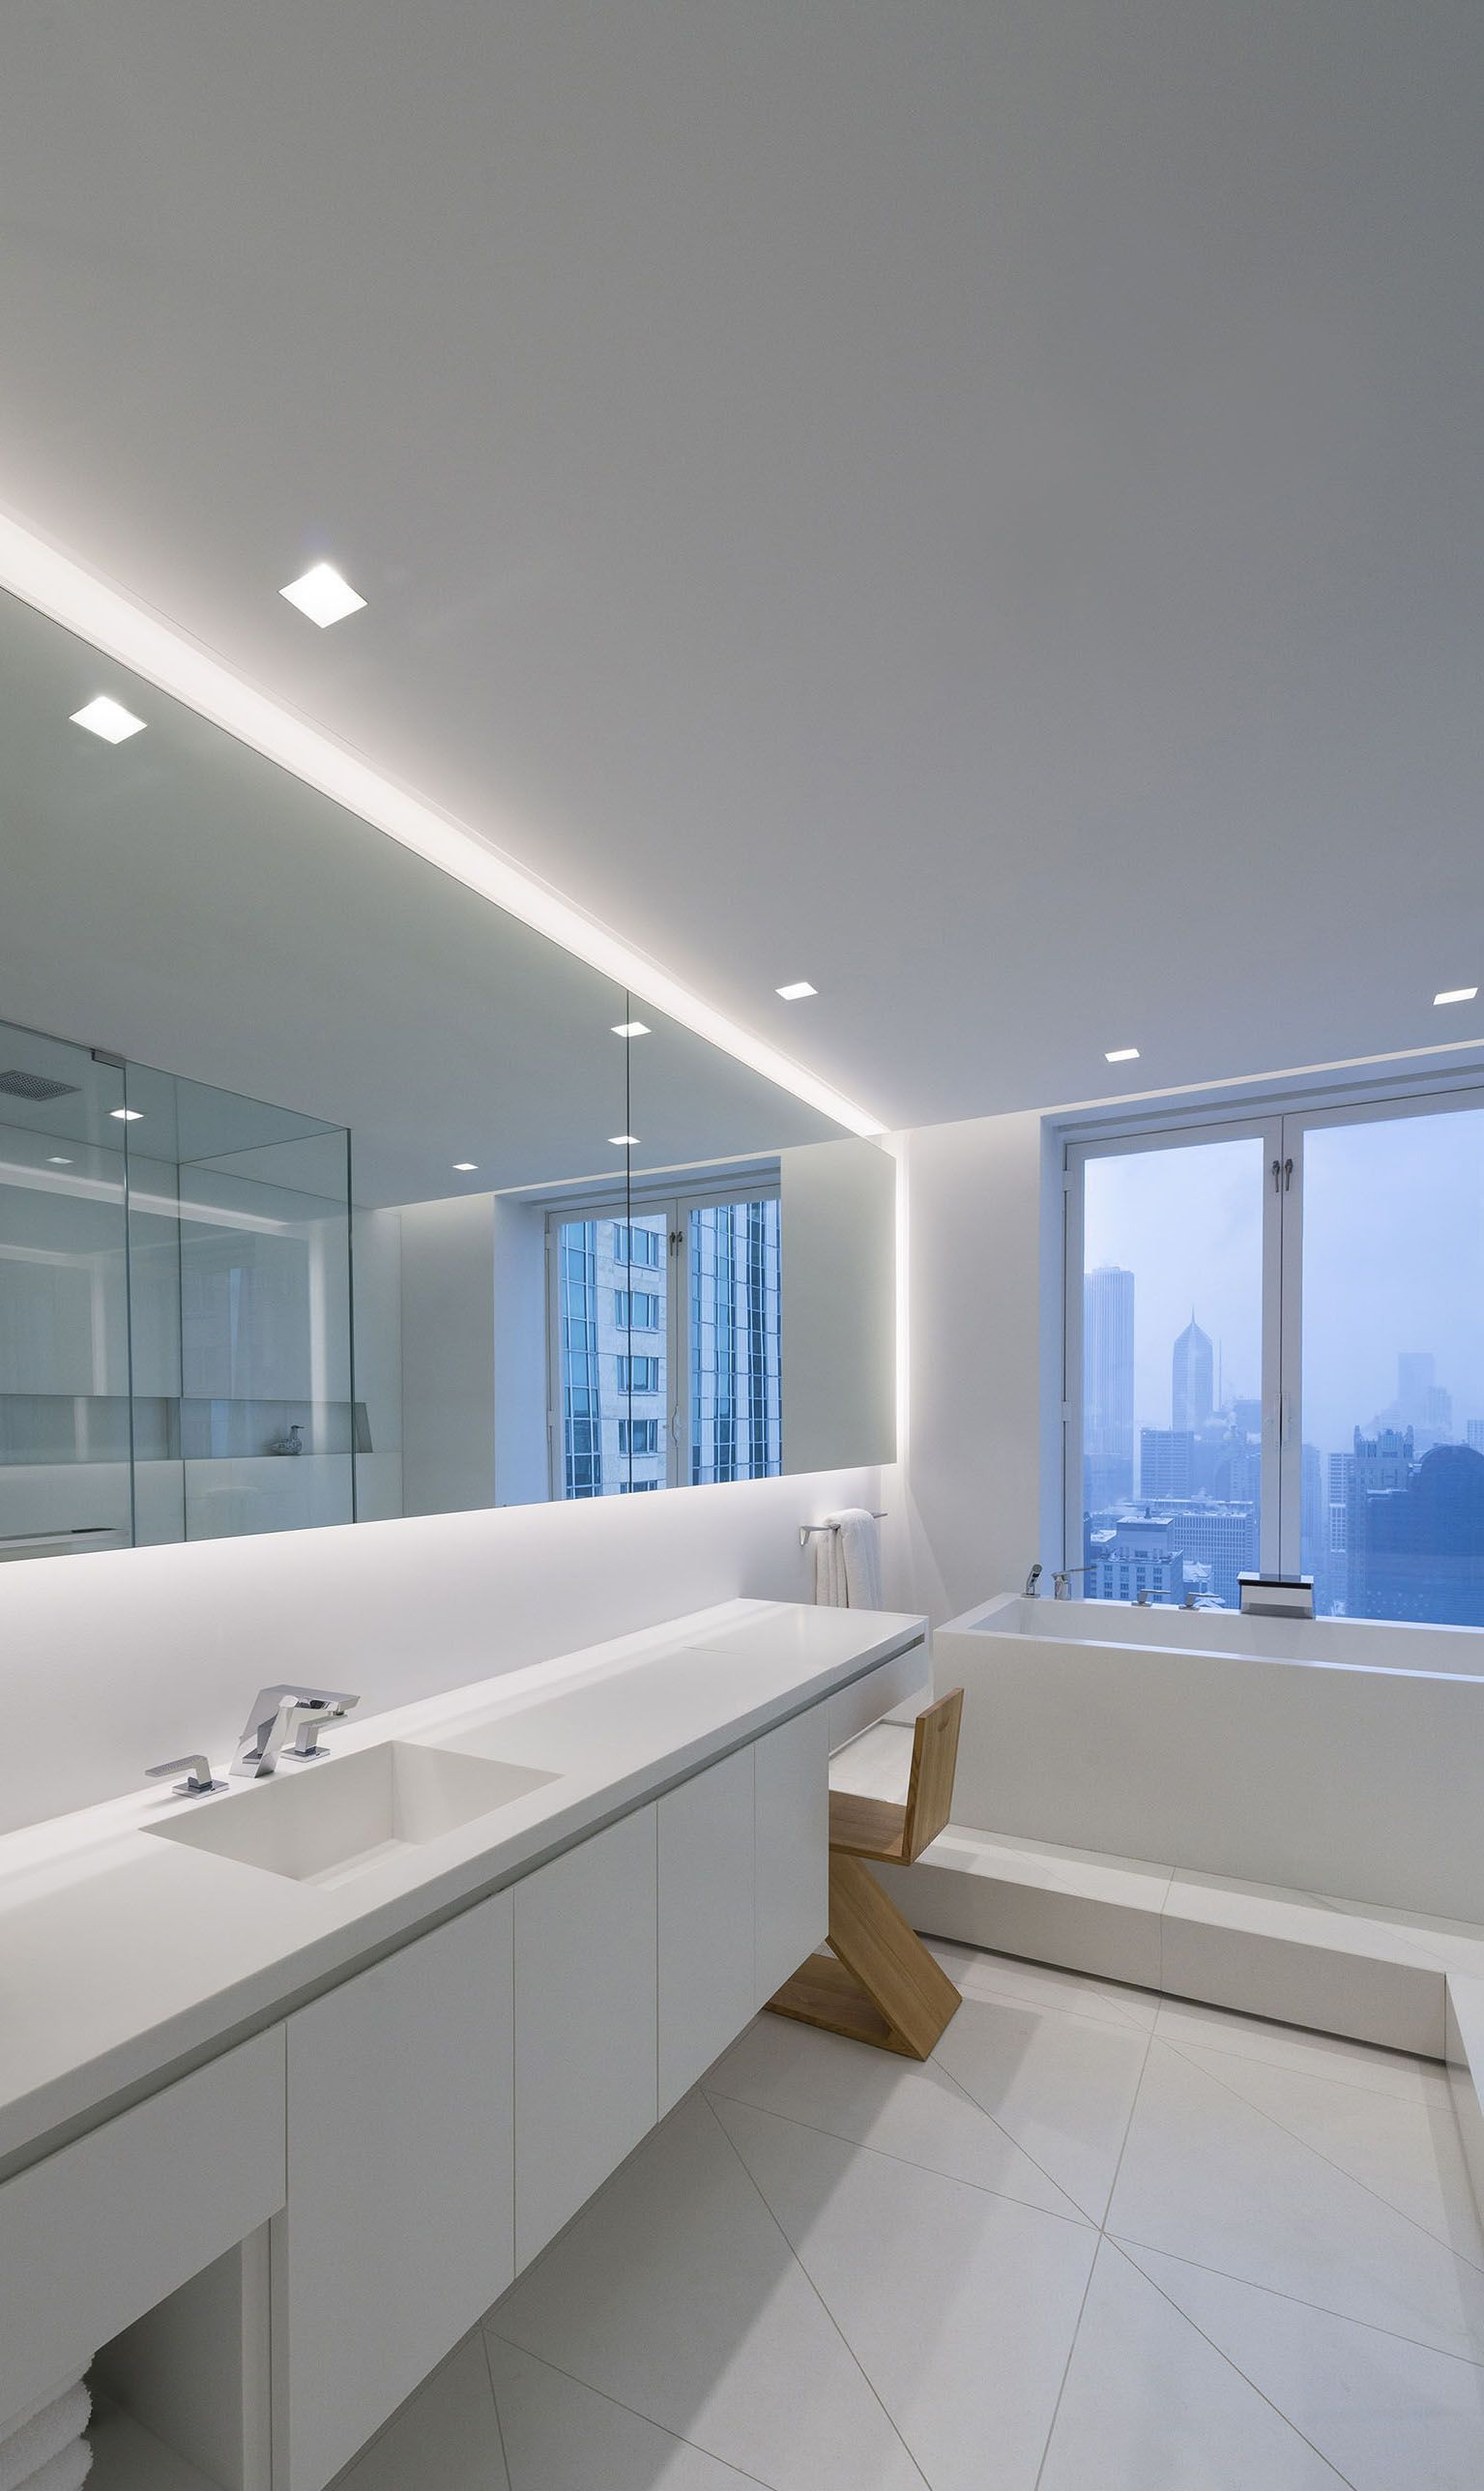 A Lighting Idea For Contempporary Bathrooms Modern Led